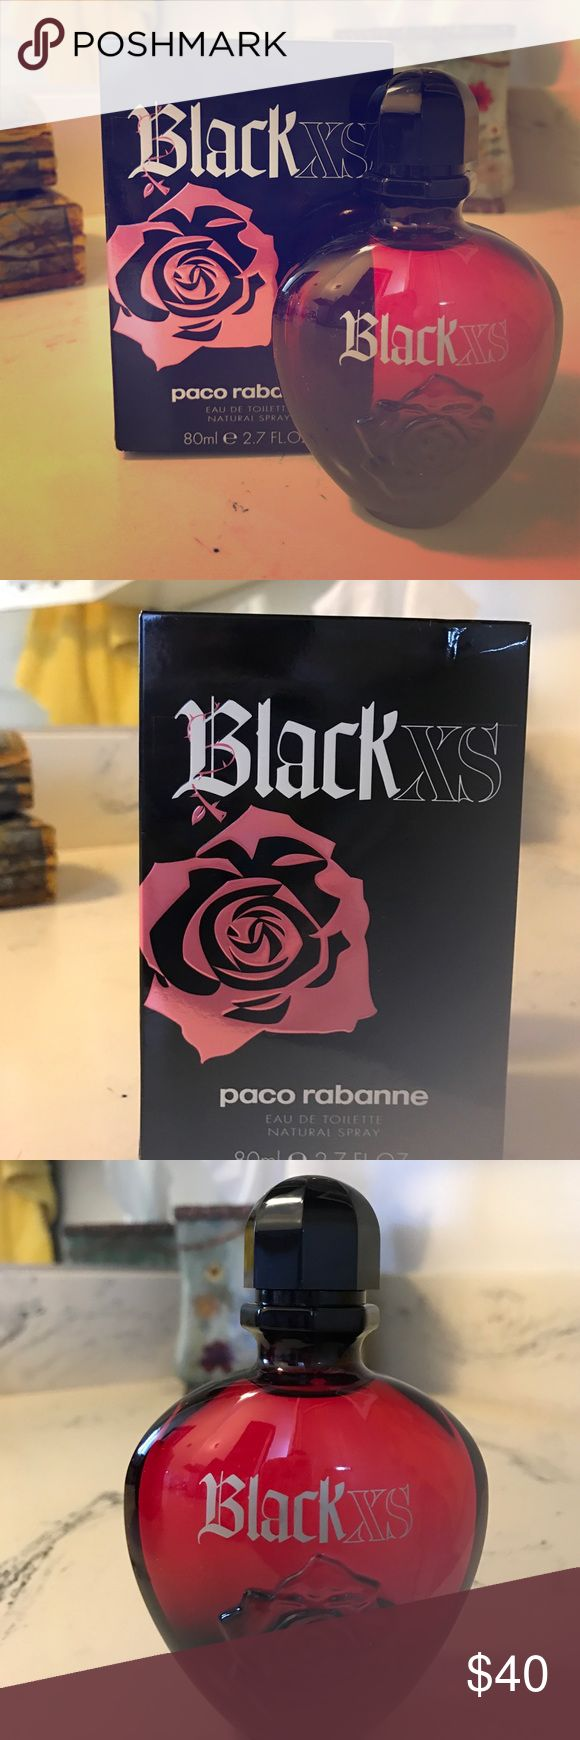 XS perfume by Paco Rabbane XS perfume 2.7 oz by Paco Rabbane.  NIB.  Super sexy!  Dark, mysterious and has great staying power on the skin.  This is like my 3rd bottle and I always get compliments!  Never used Paco Rabbane Other